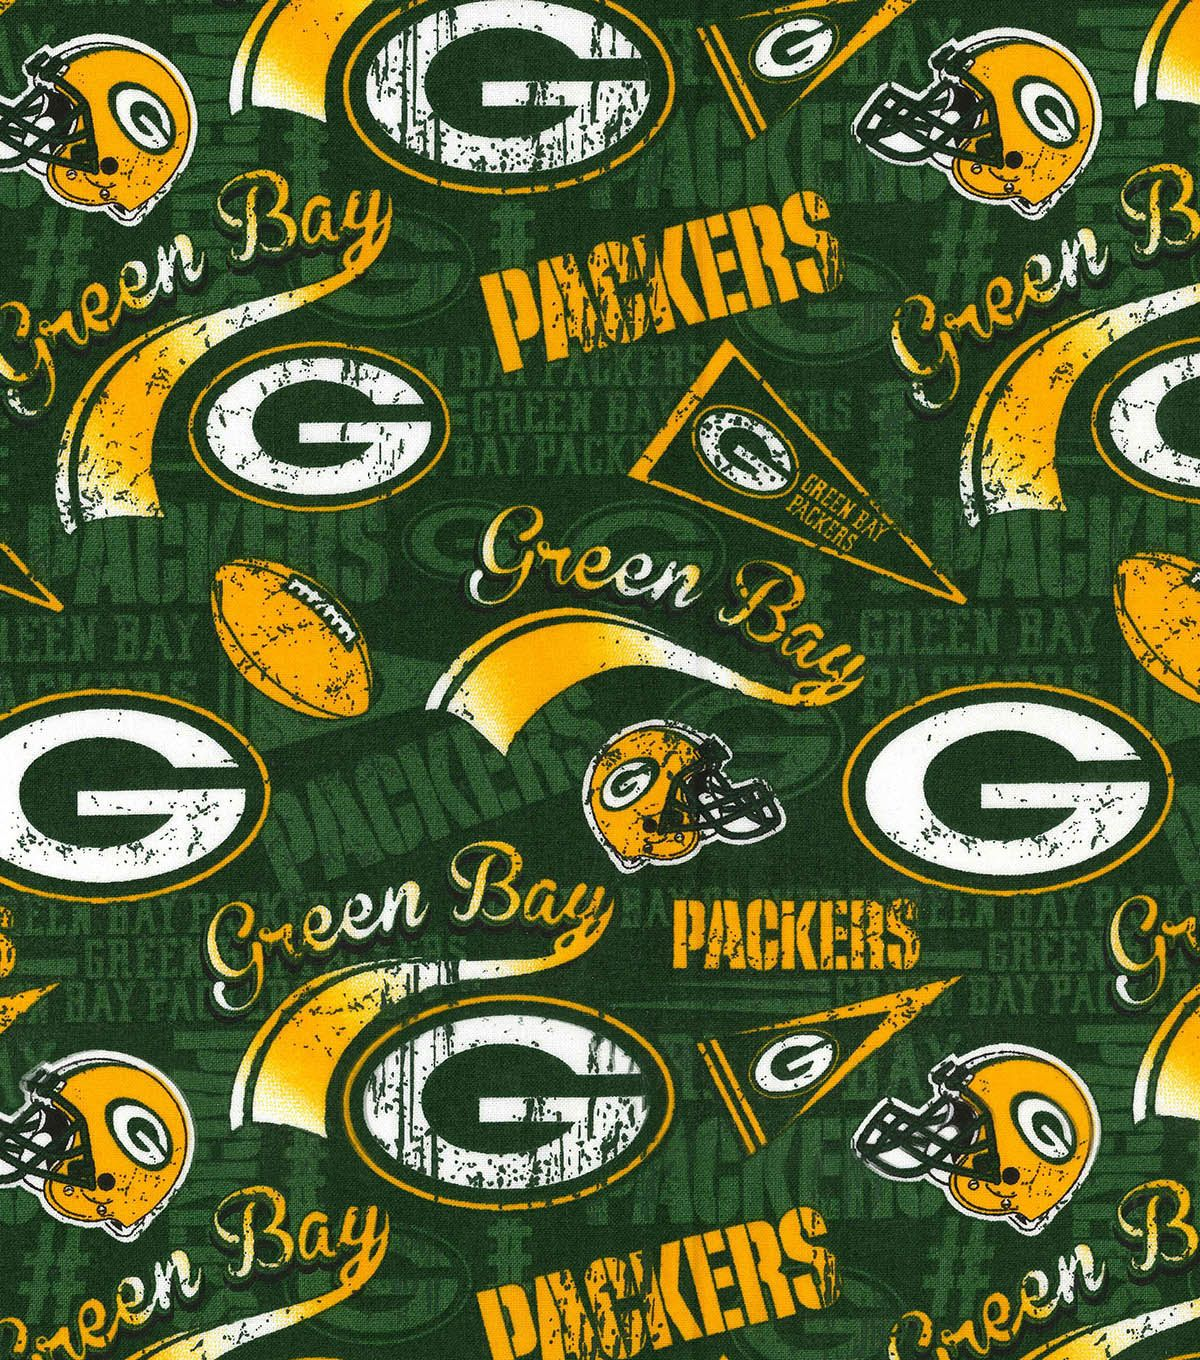 Nfl Green Bay Packers Retro Ctn In 2020 Green Bay Packers Green Bay Packers Vintage Green Bay Packers Dog